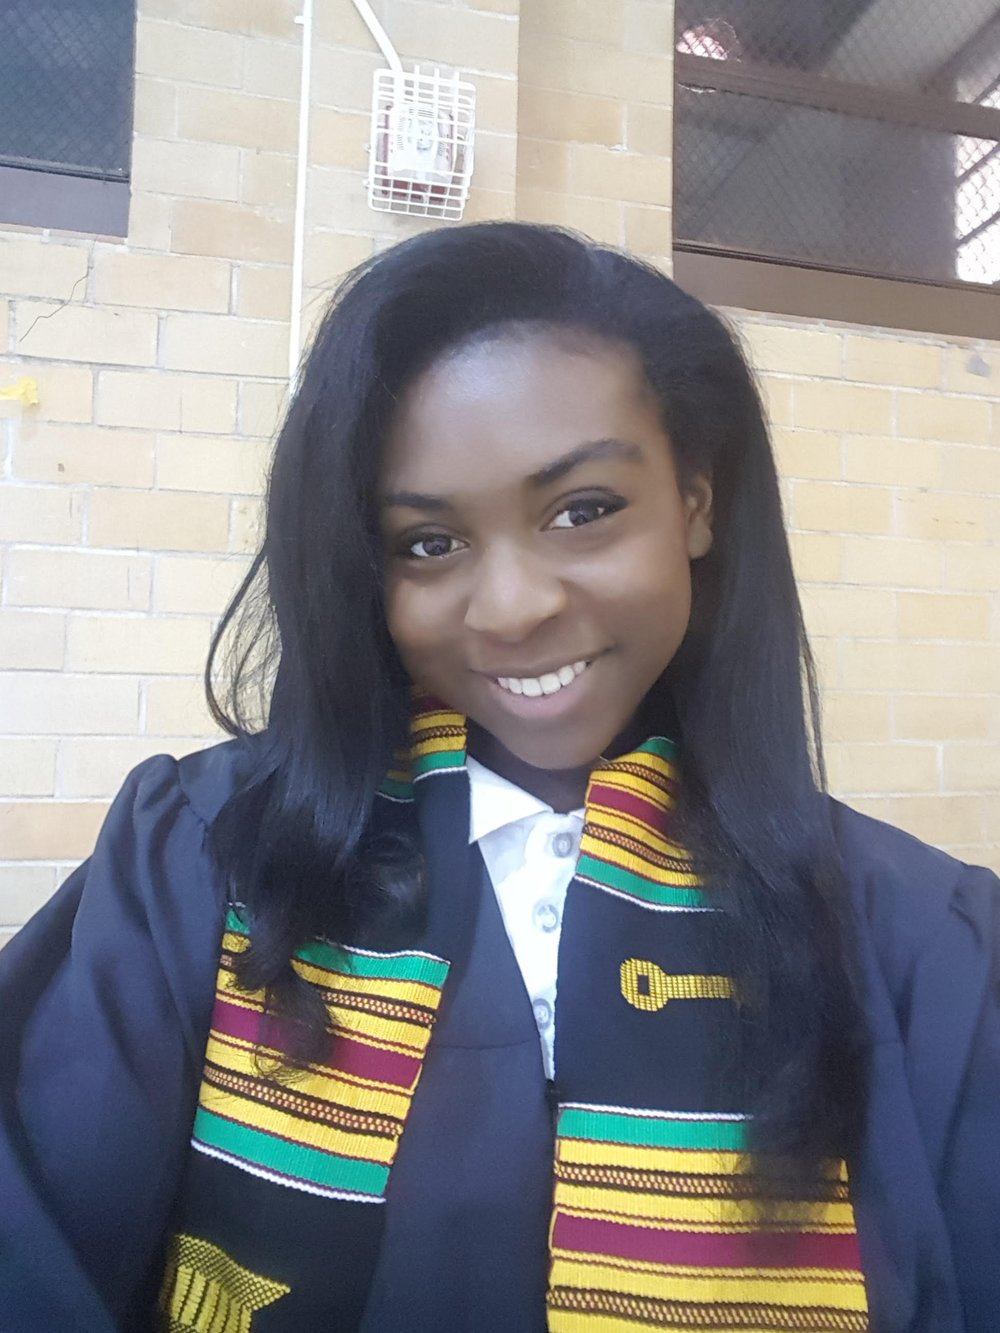 Coraźon Johnston - Top 10 Graduating Senior at Carver High School